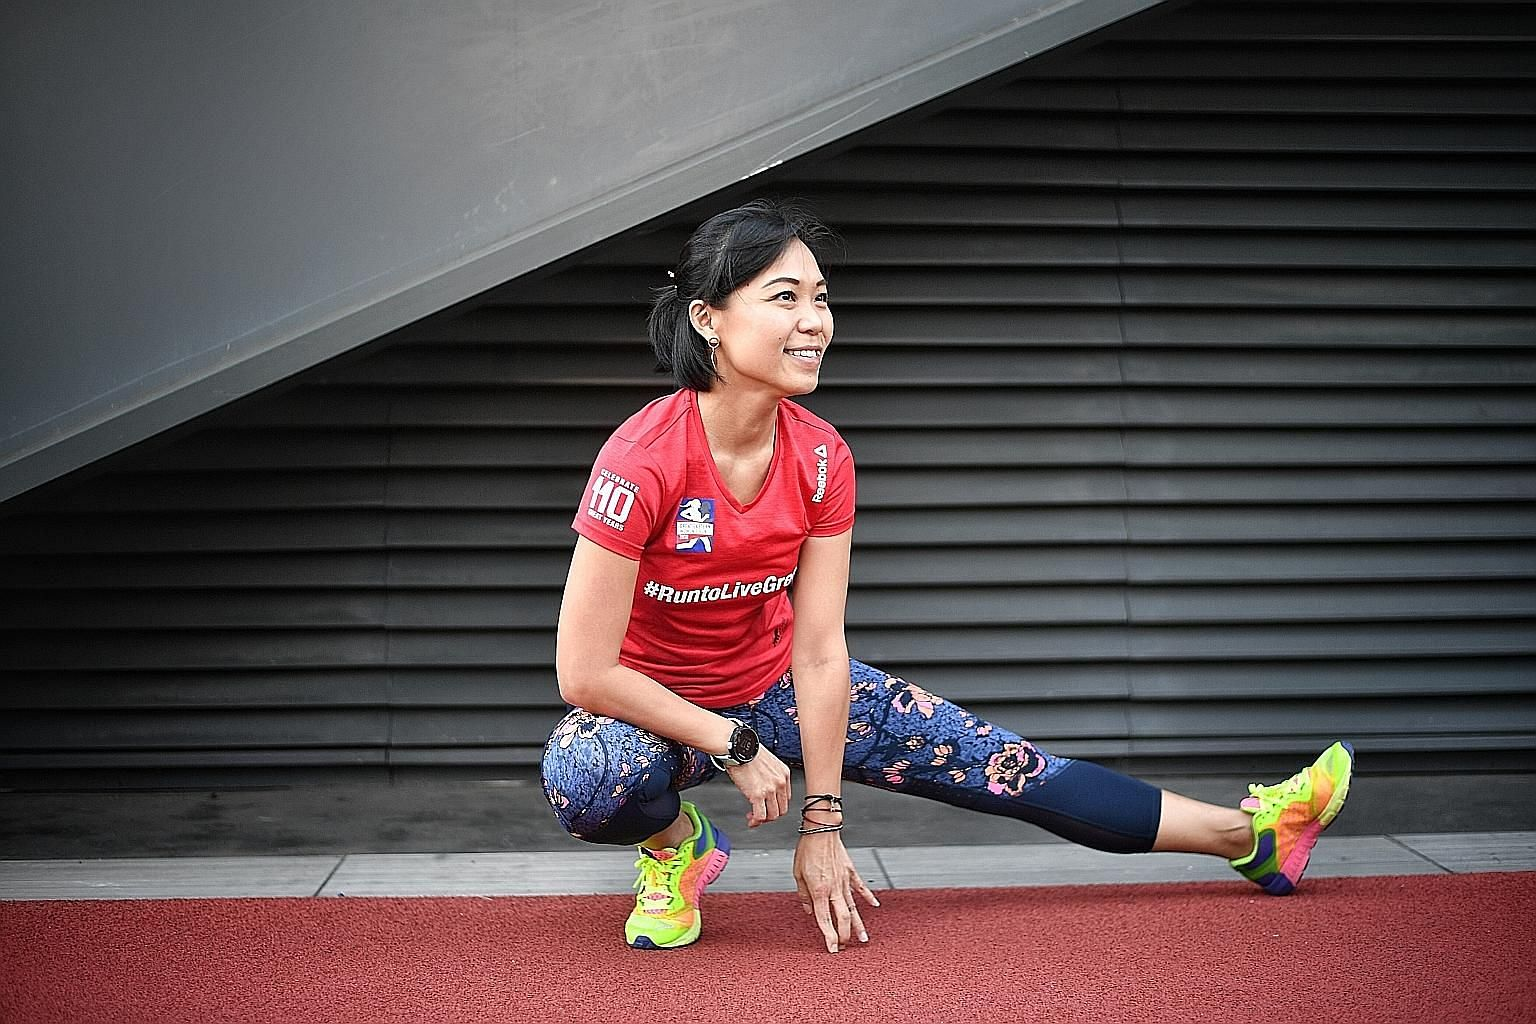 Logistics executive Angela Lim, who was diagnosed with Type 1 diabetes in 2010, said she used to put beauty before health and allowed her condition to worsen. It was only after a medical review last year that she began to embrace a strict fitness rou